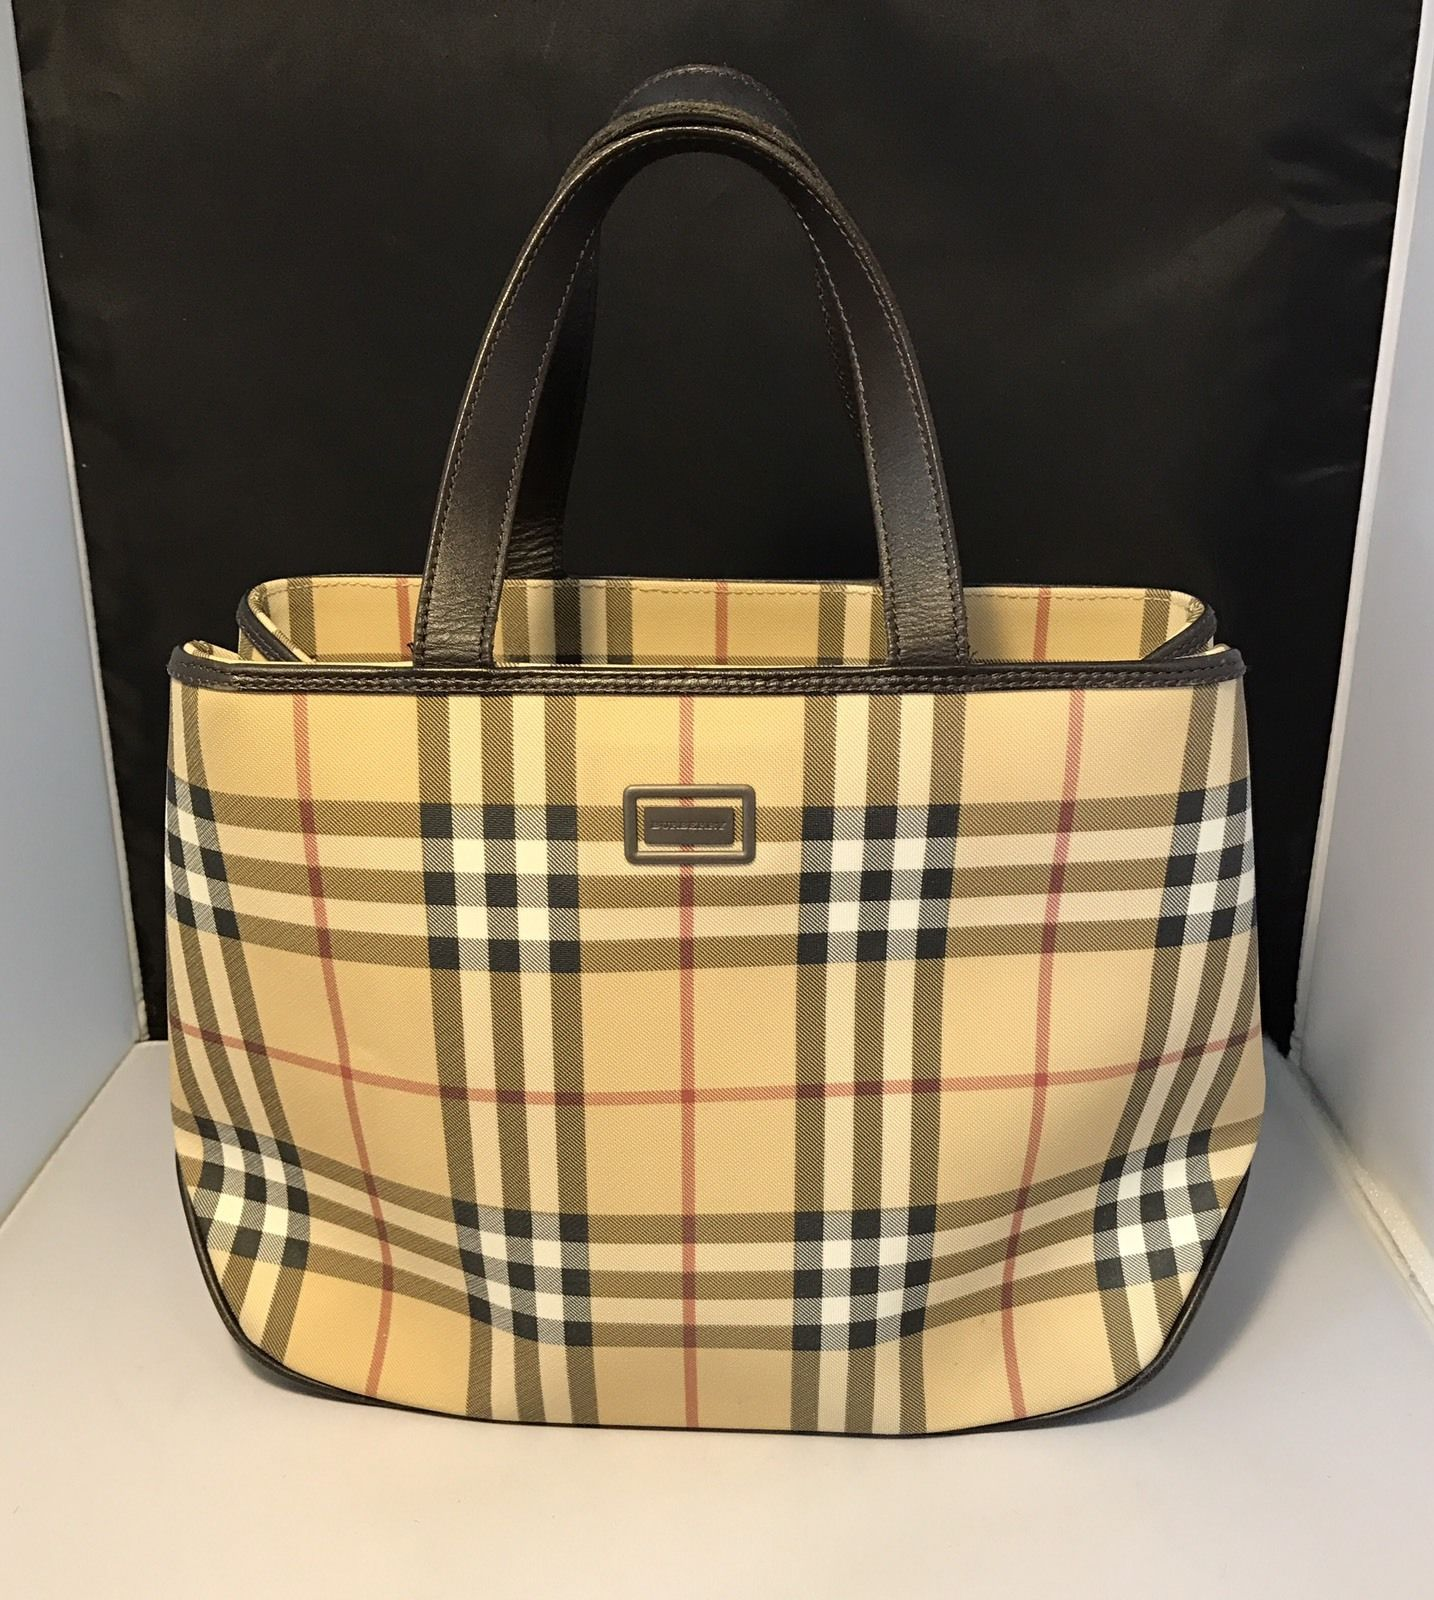 ba7f70c2711a Explore these ideas and much more! Authentic Burberry Nova Check Coated  Canvas Leather Medium Tote Bag ...